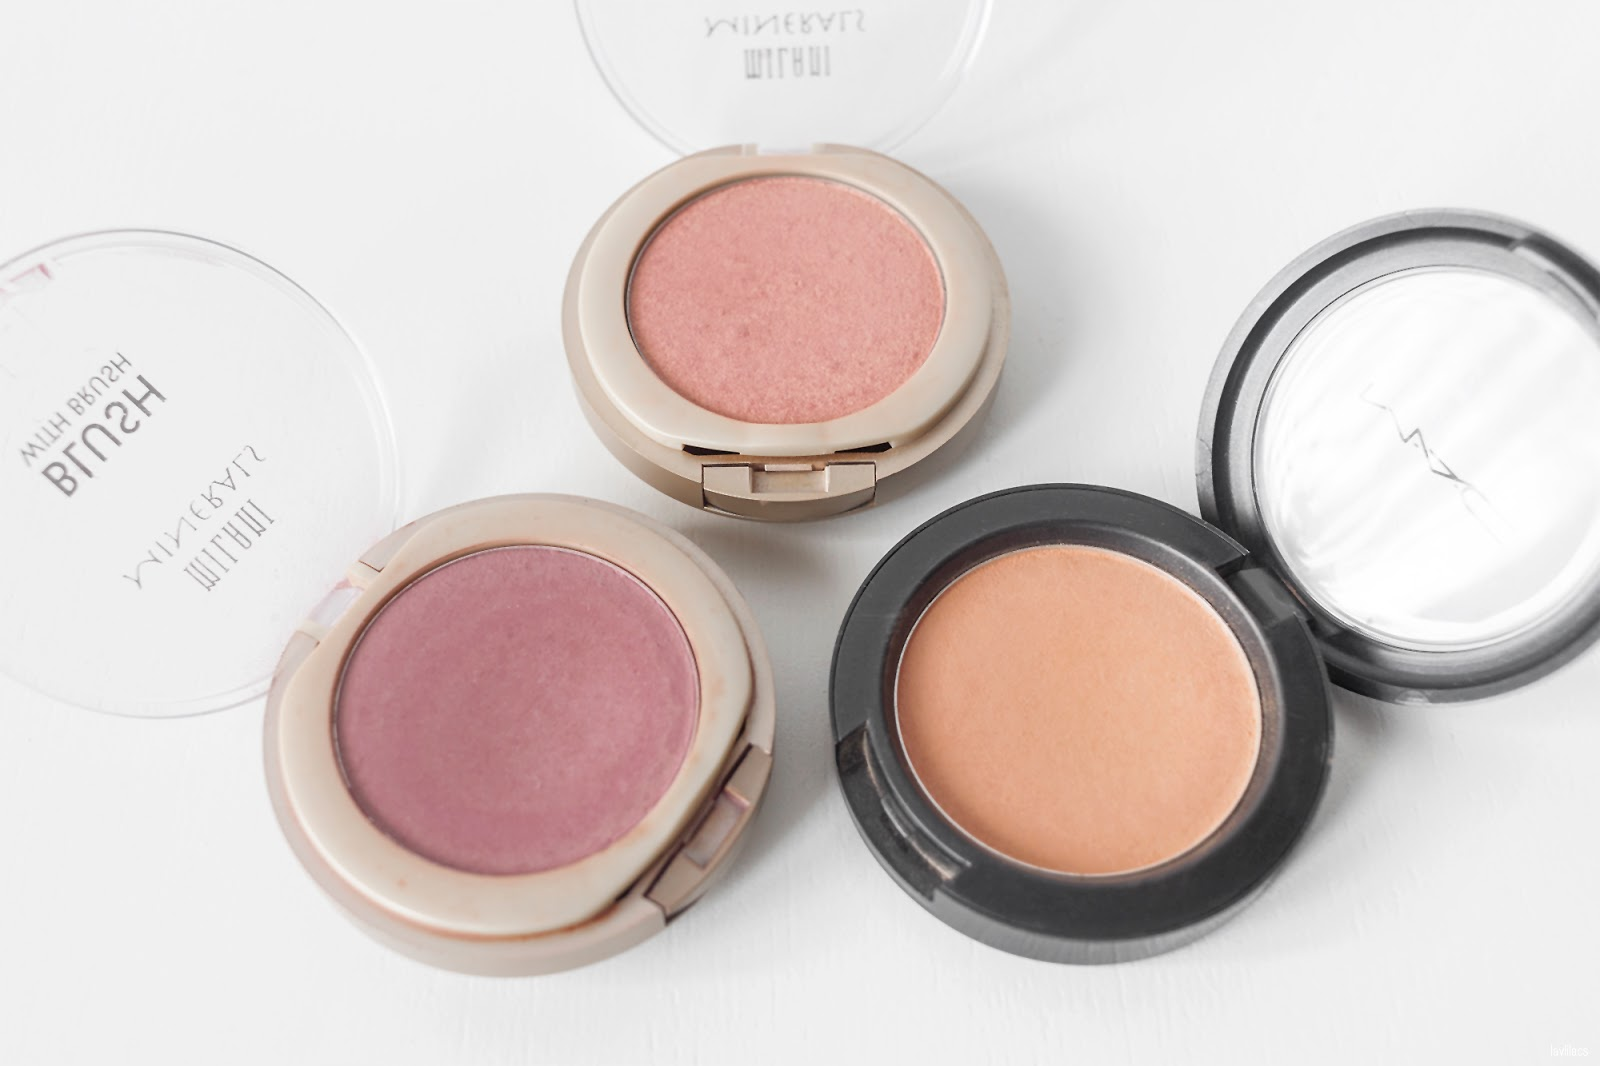 lavlilacs 2018 Project Make a Dent - half year - Milani Minerals Blushes in Sweet Rose and Luminous, MAC Cosmetics My Highland Honey